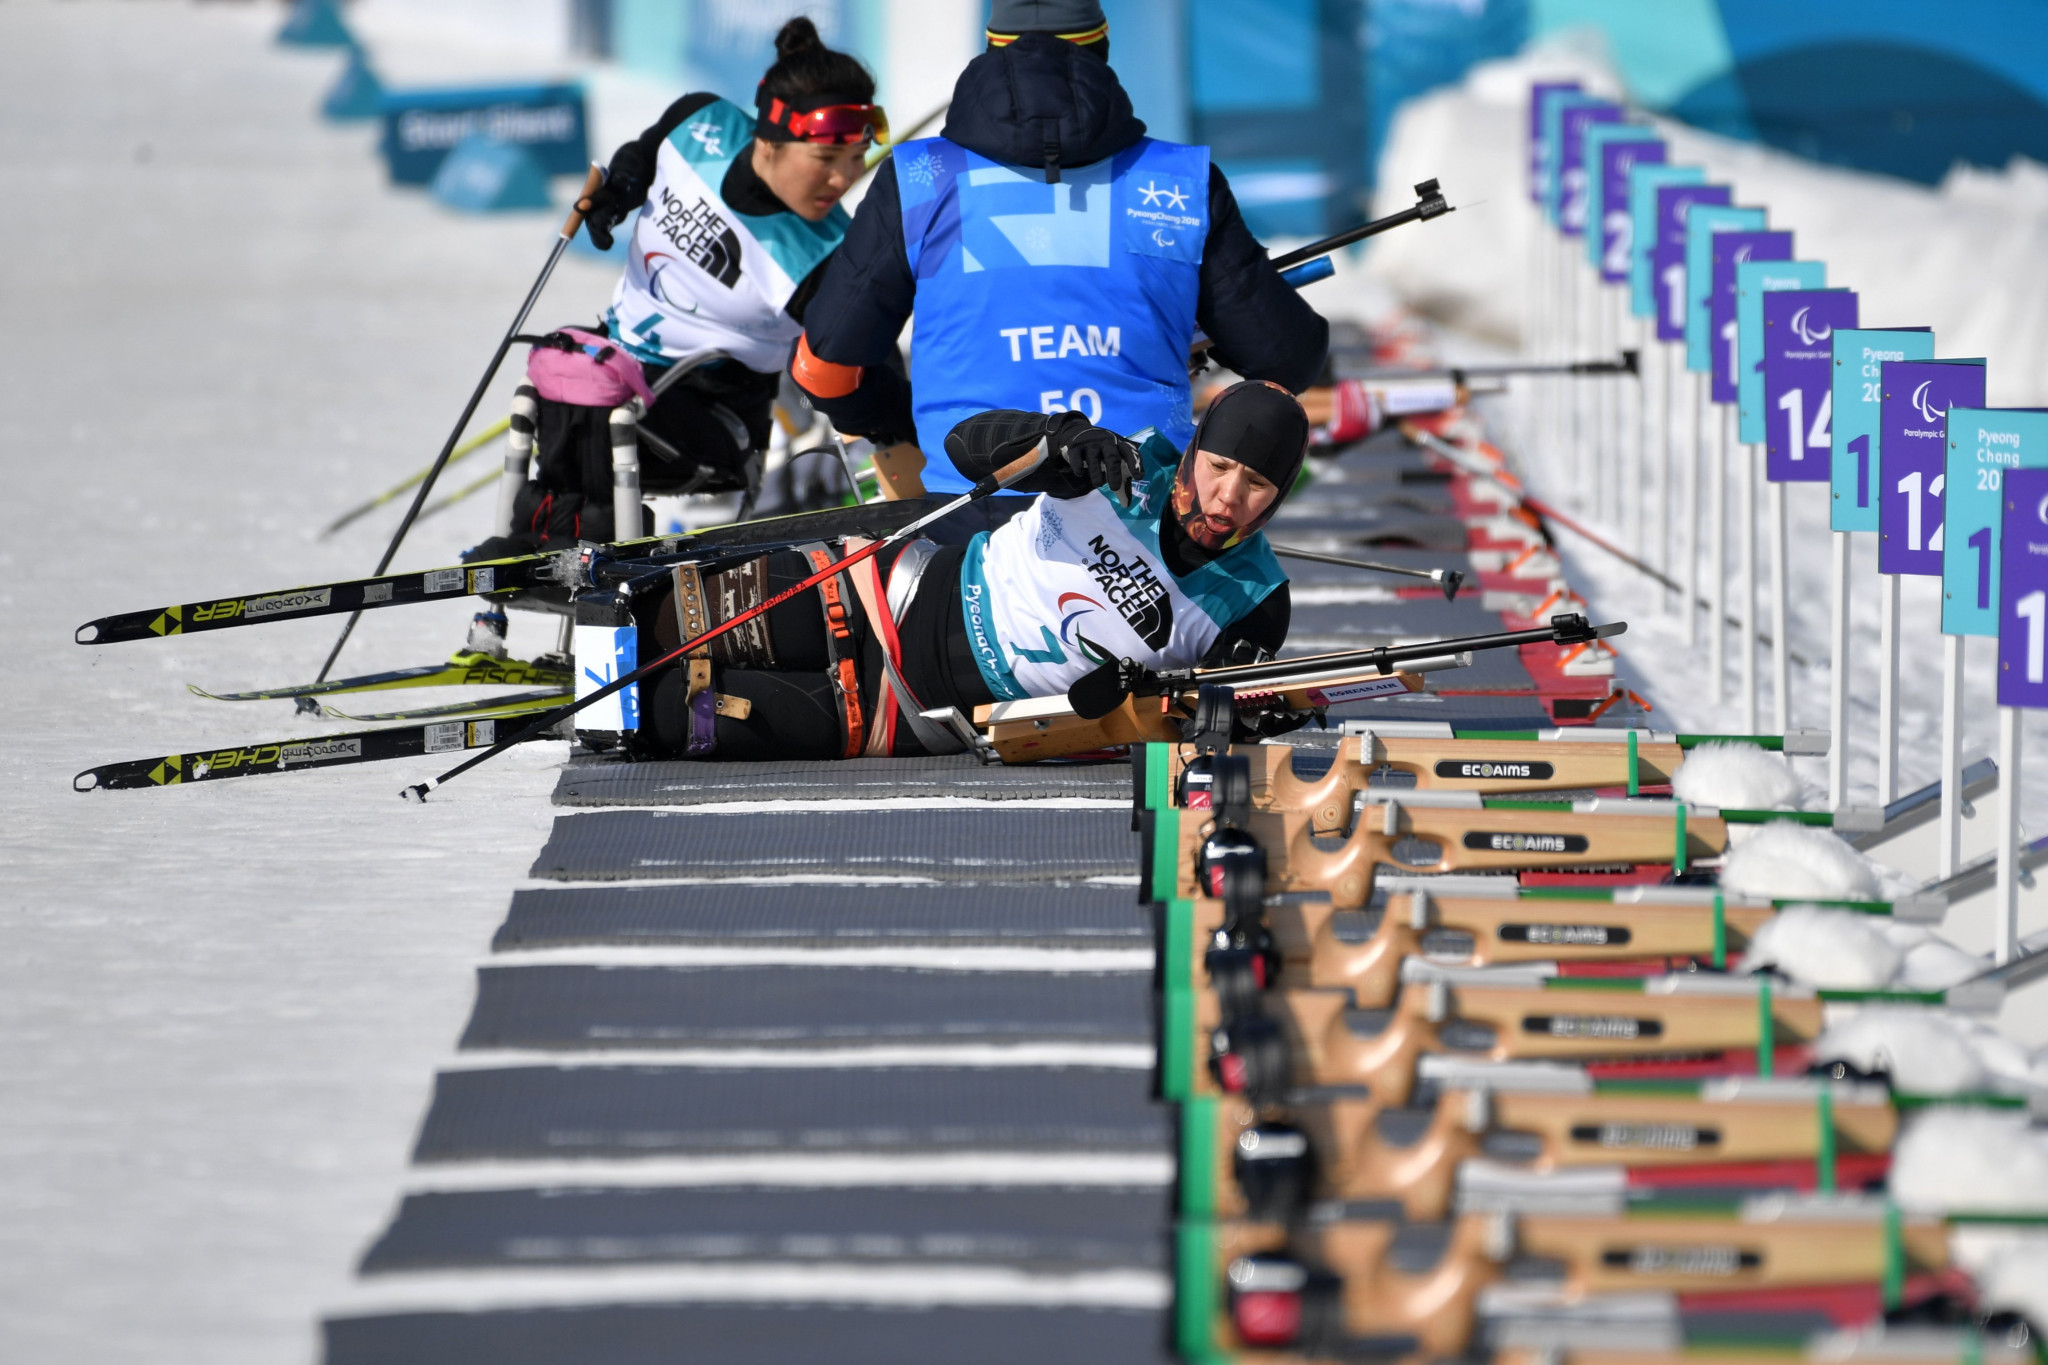 Russian Para skier Fedorova given four-year doping ban by IPC